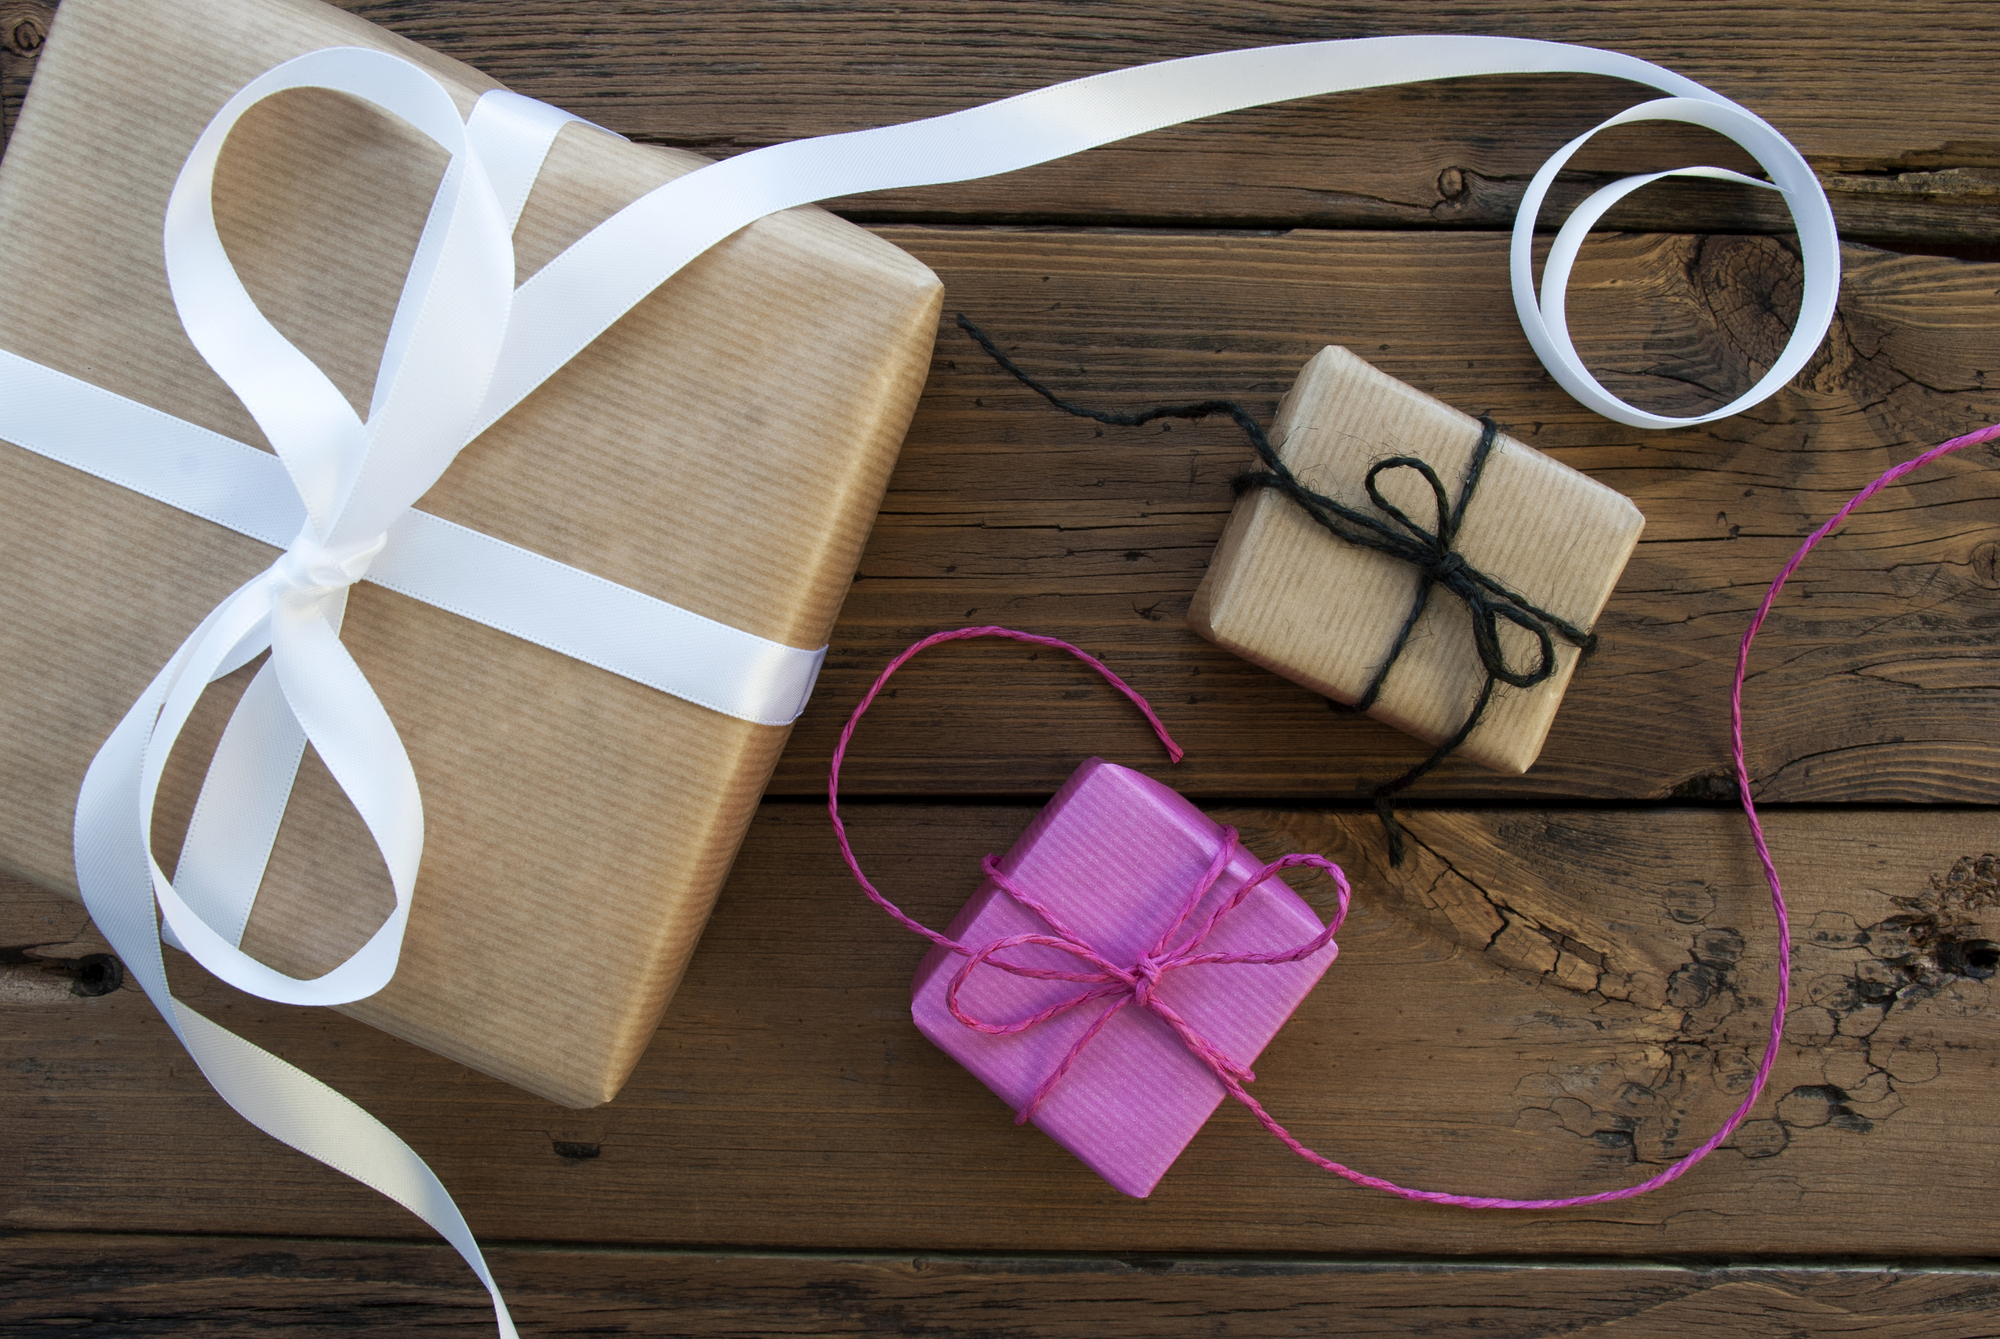 Gifts from an E-tailer, tied with ribbon for the holidays.